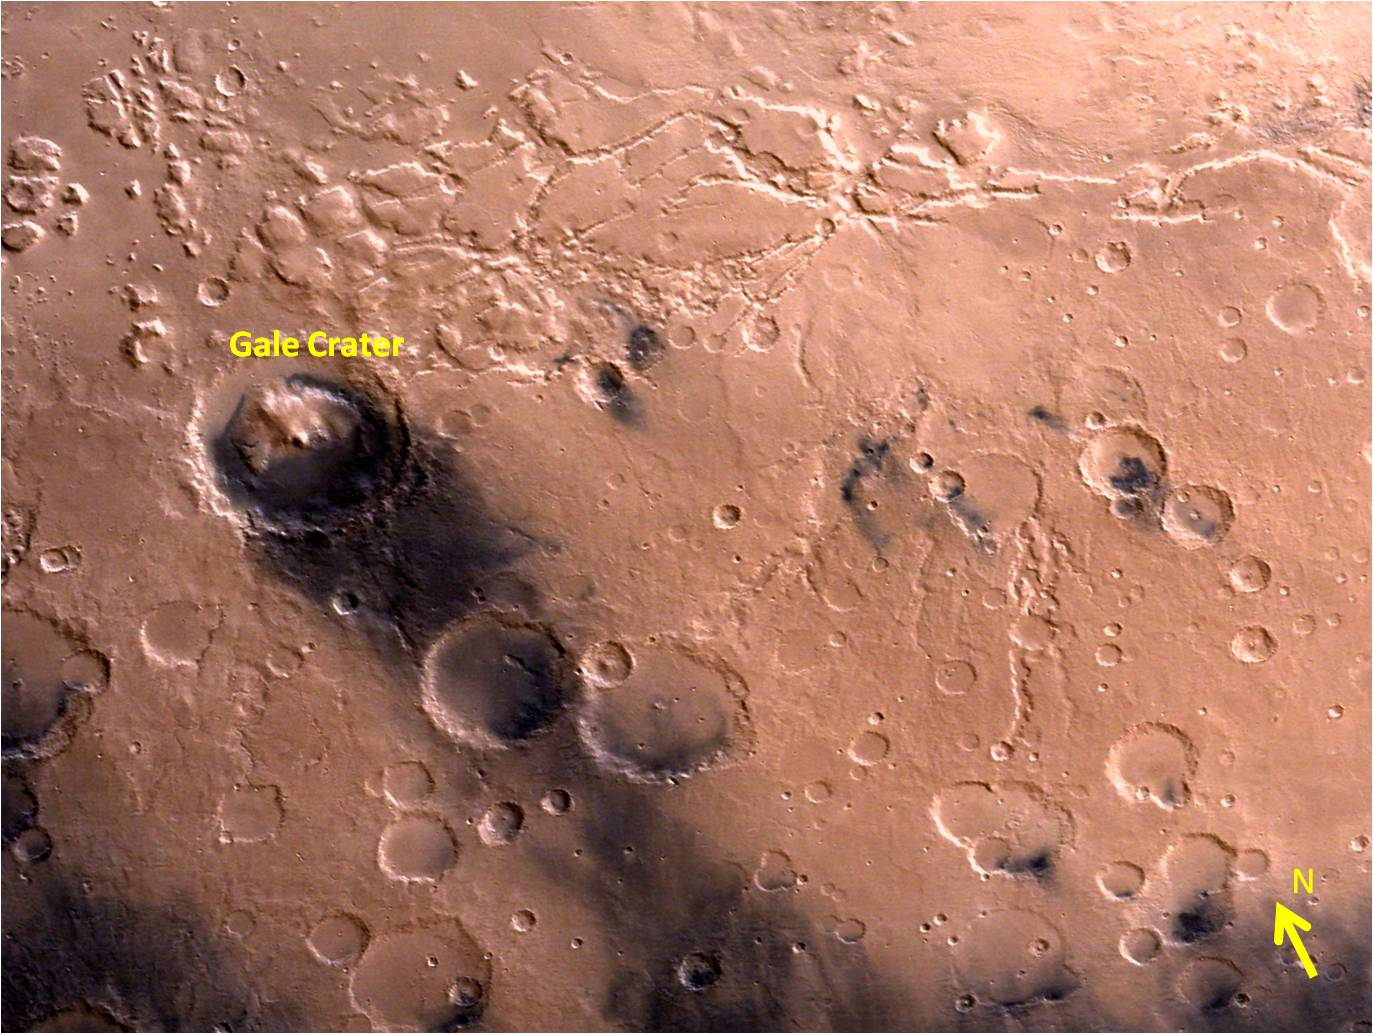 pictures from mars colour camera mcc onboard india u0027s mars